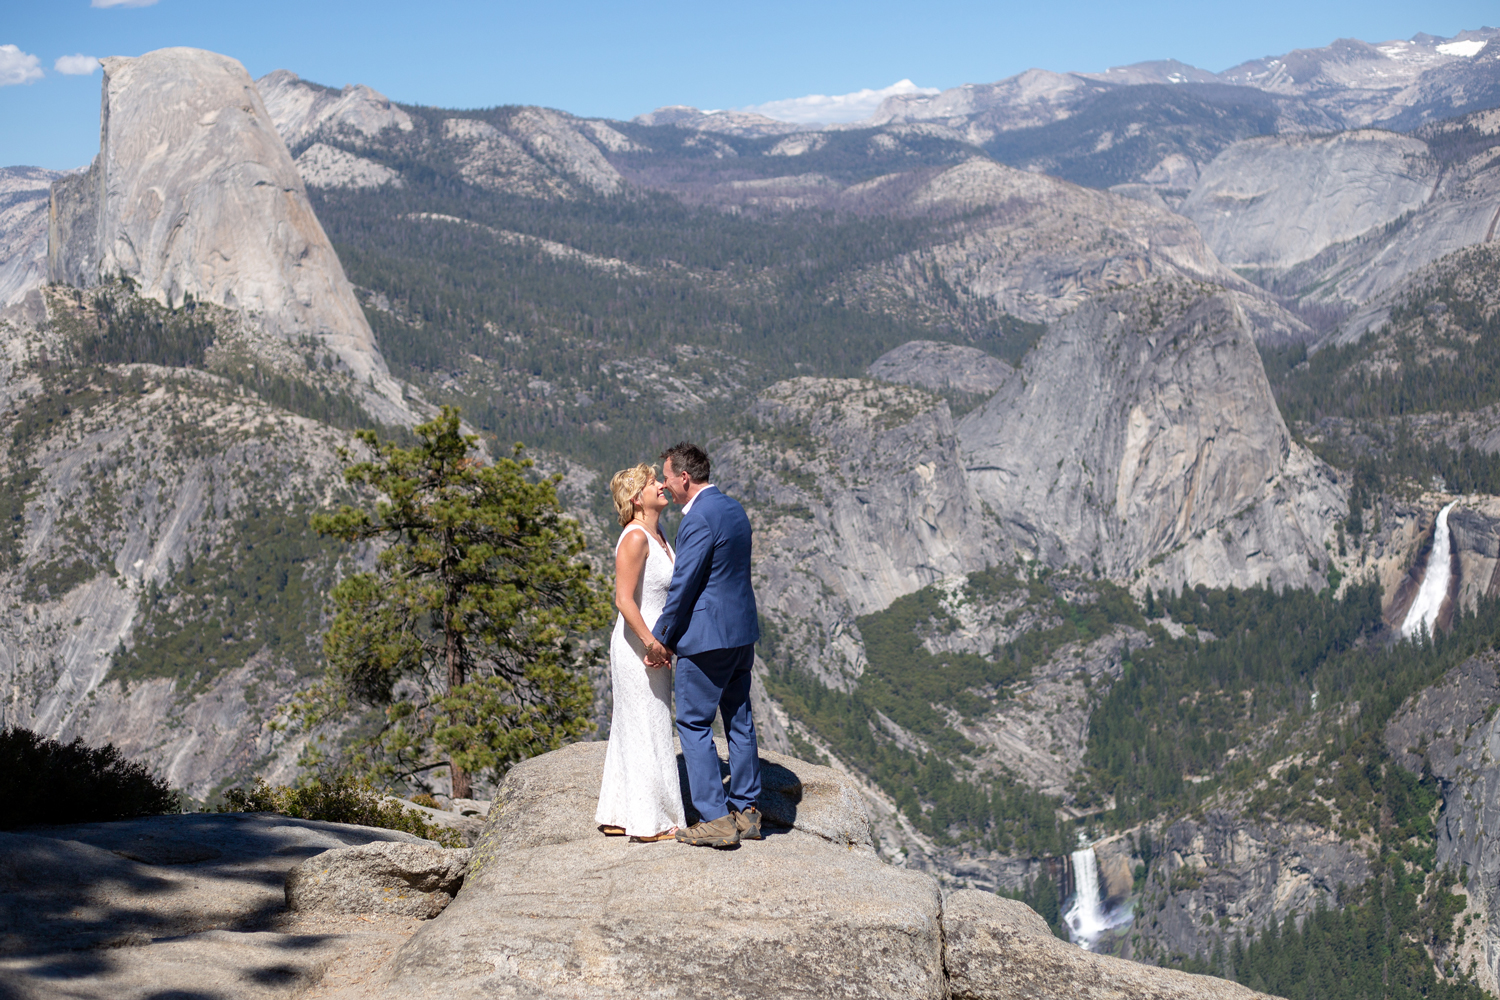 Yosemite-Wedding-photography-lisa-james (7).jpg